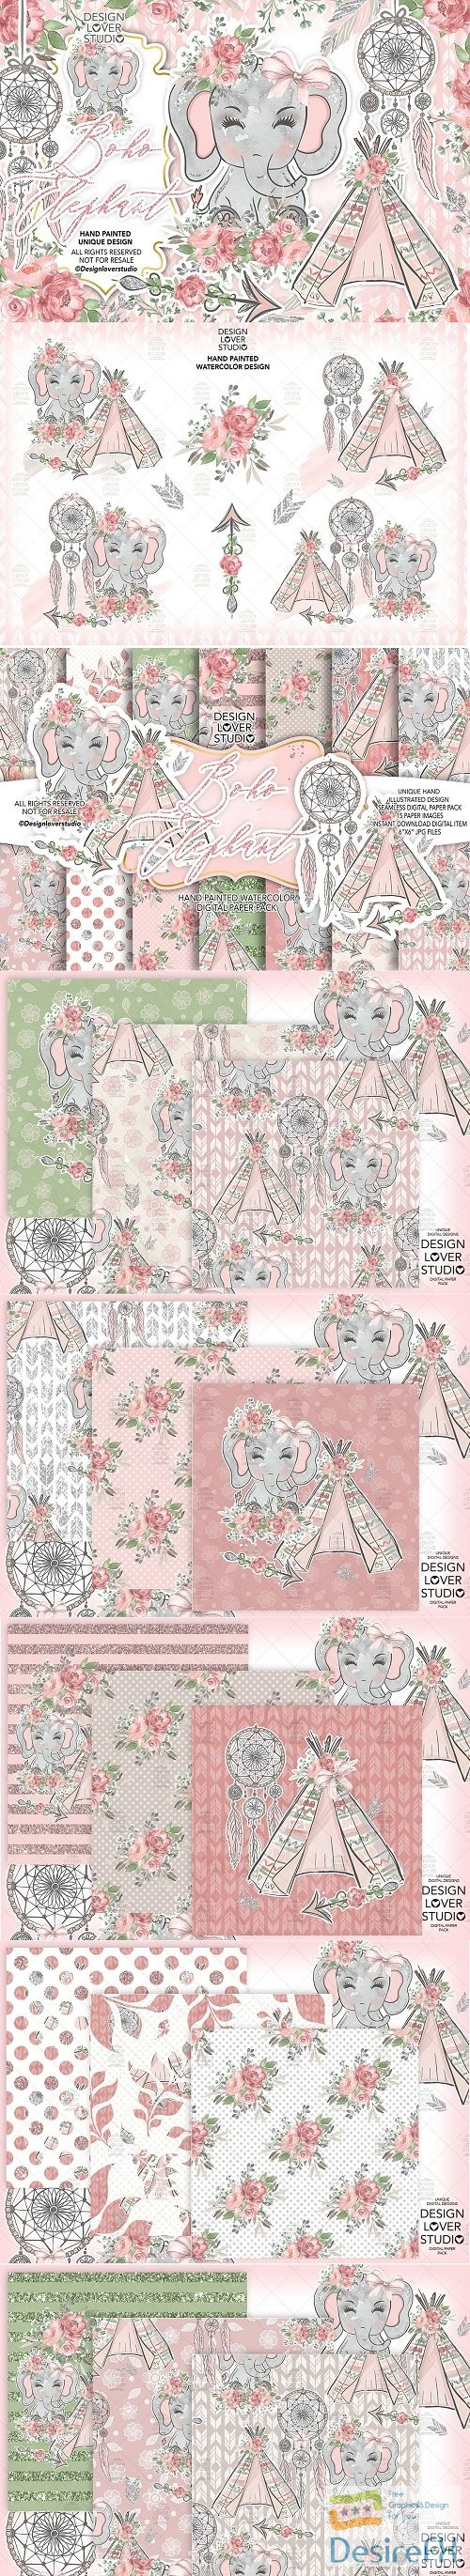 Boho Elephant Cute design + digital paper pack